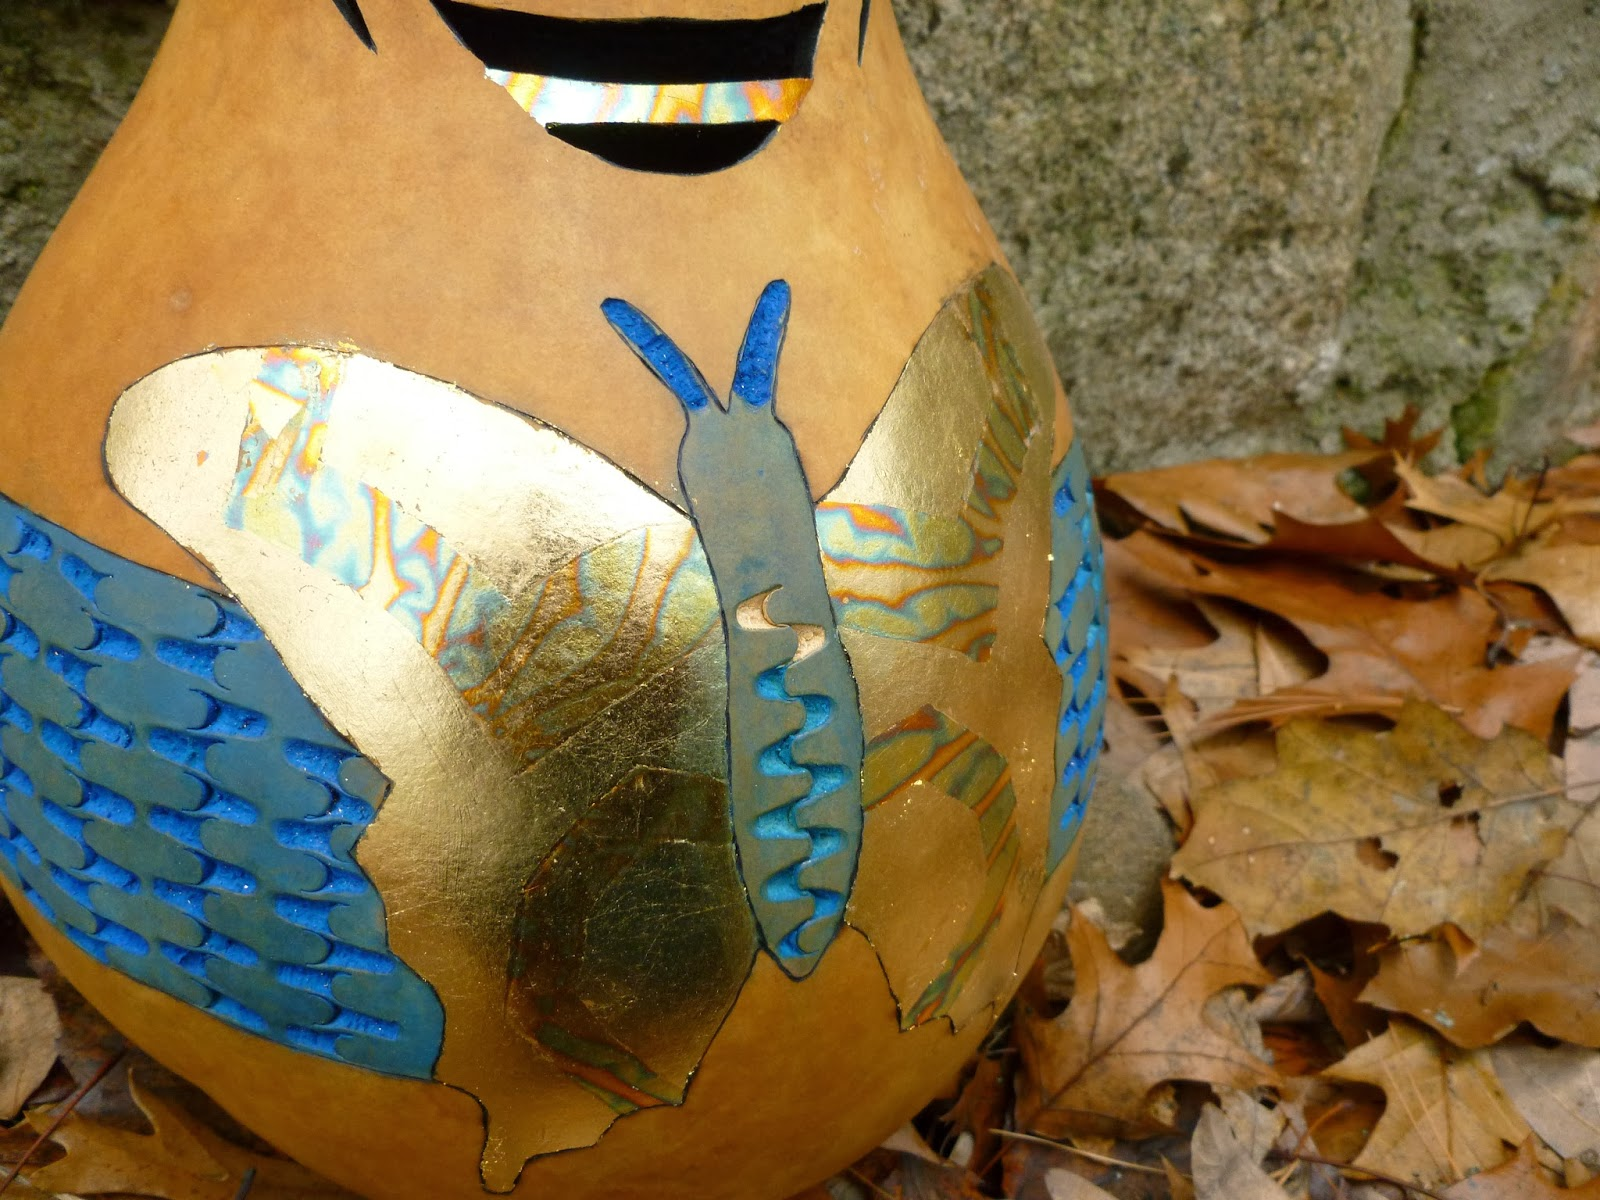 Bernadette s gourd creations how to chip carve a